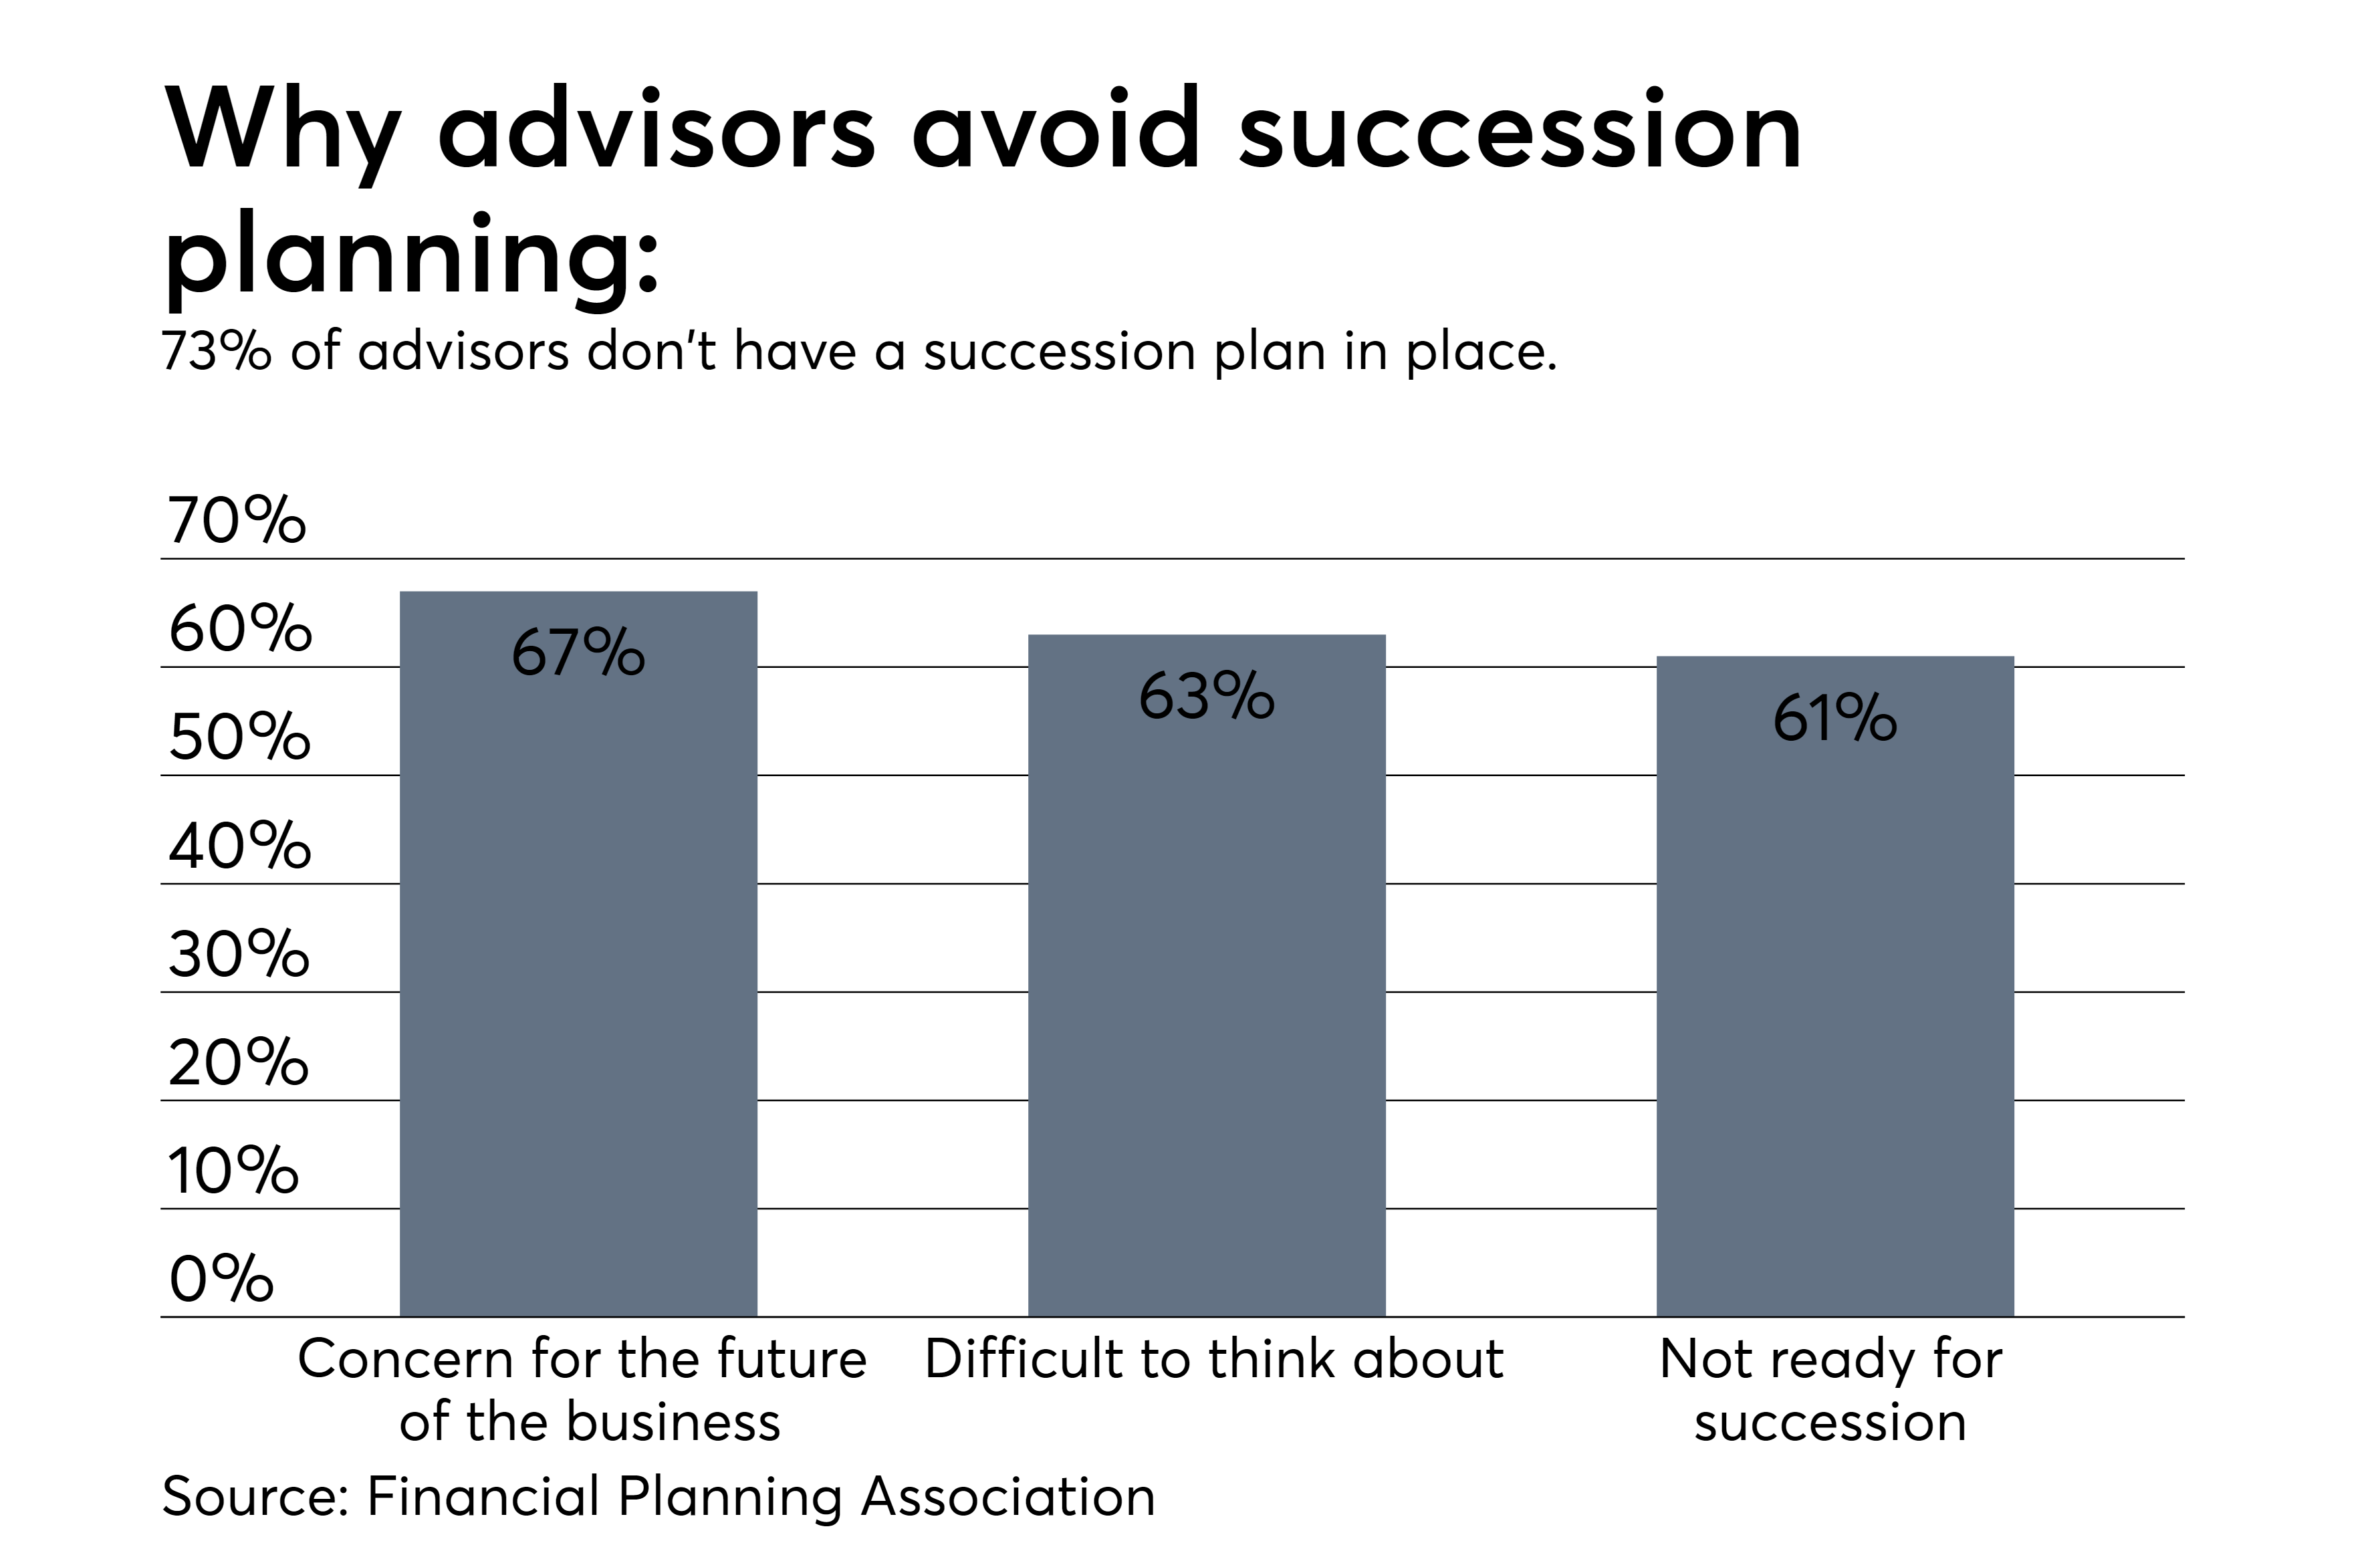 https://assets.sourcemedia.com/4a/ed/3d10d18b4ddfb4da10dc305398de/succession-planning.png